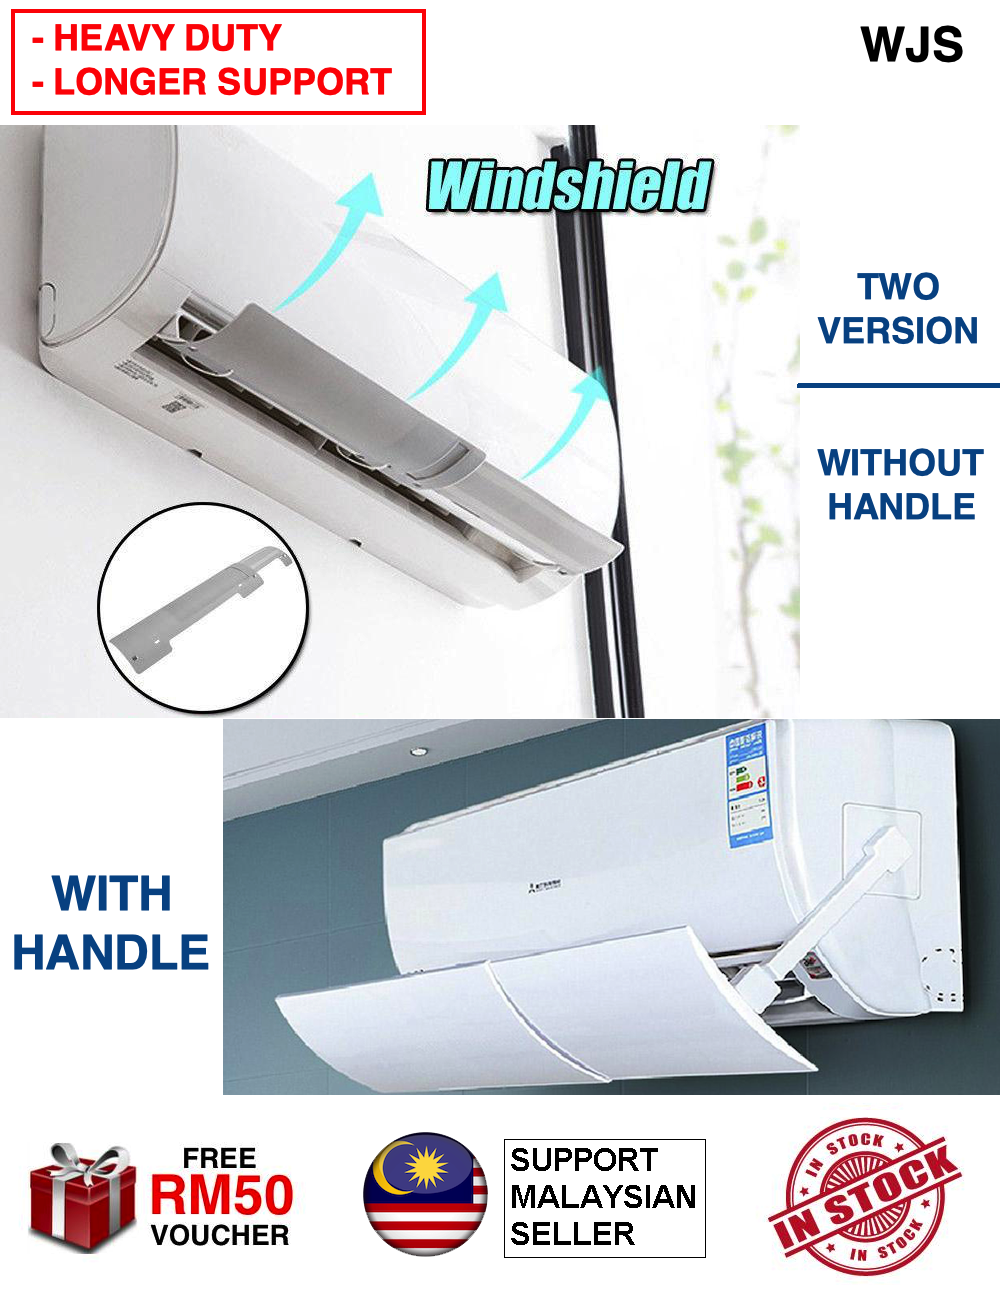 (LONGER SUPPORT) WJS Heavy Duty Air Conditioner Windshield Aircond Windshield Cold Wind Deflector Retractable Baffle Aircond Protector Cassette Aircond Penyaman Udara WHITE [FREE RM 50 VOUCHER]